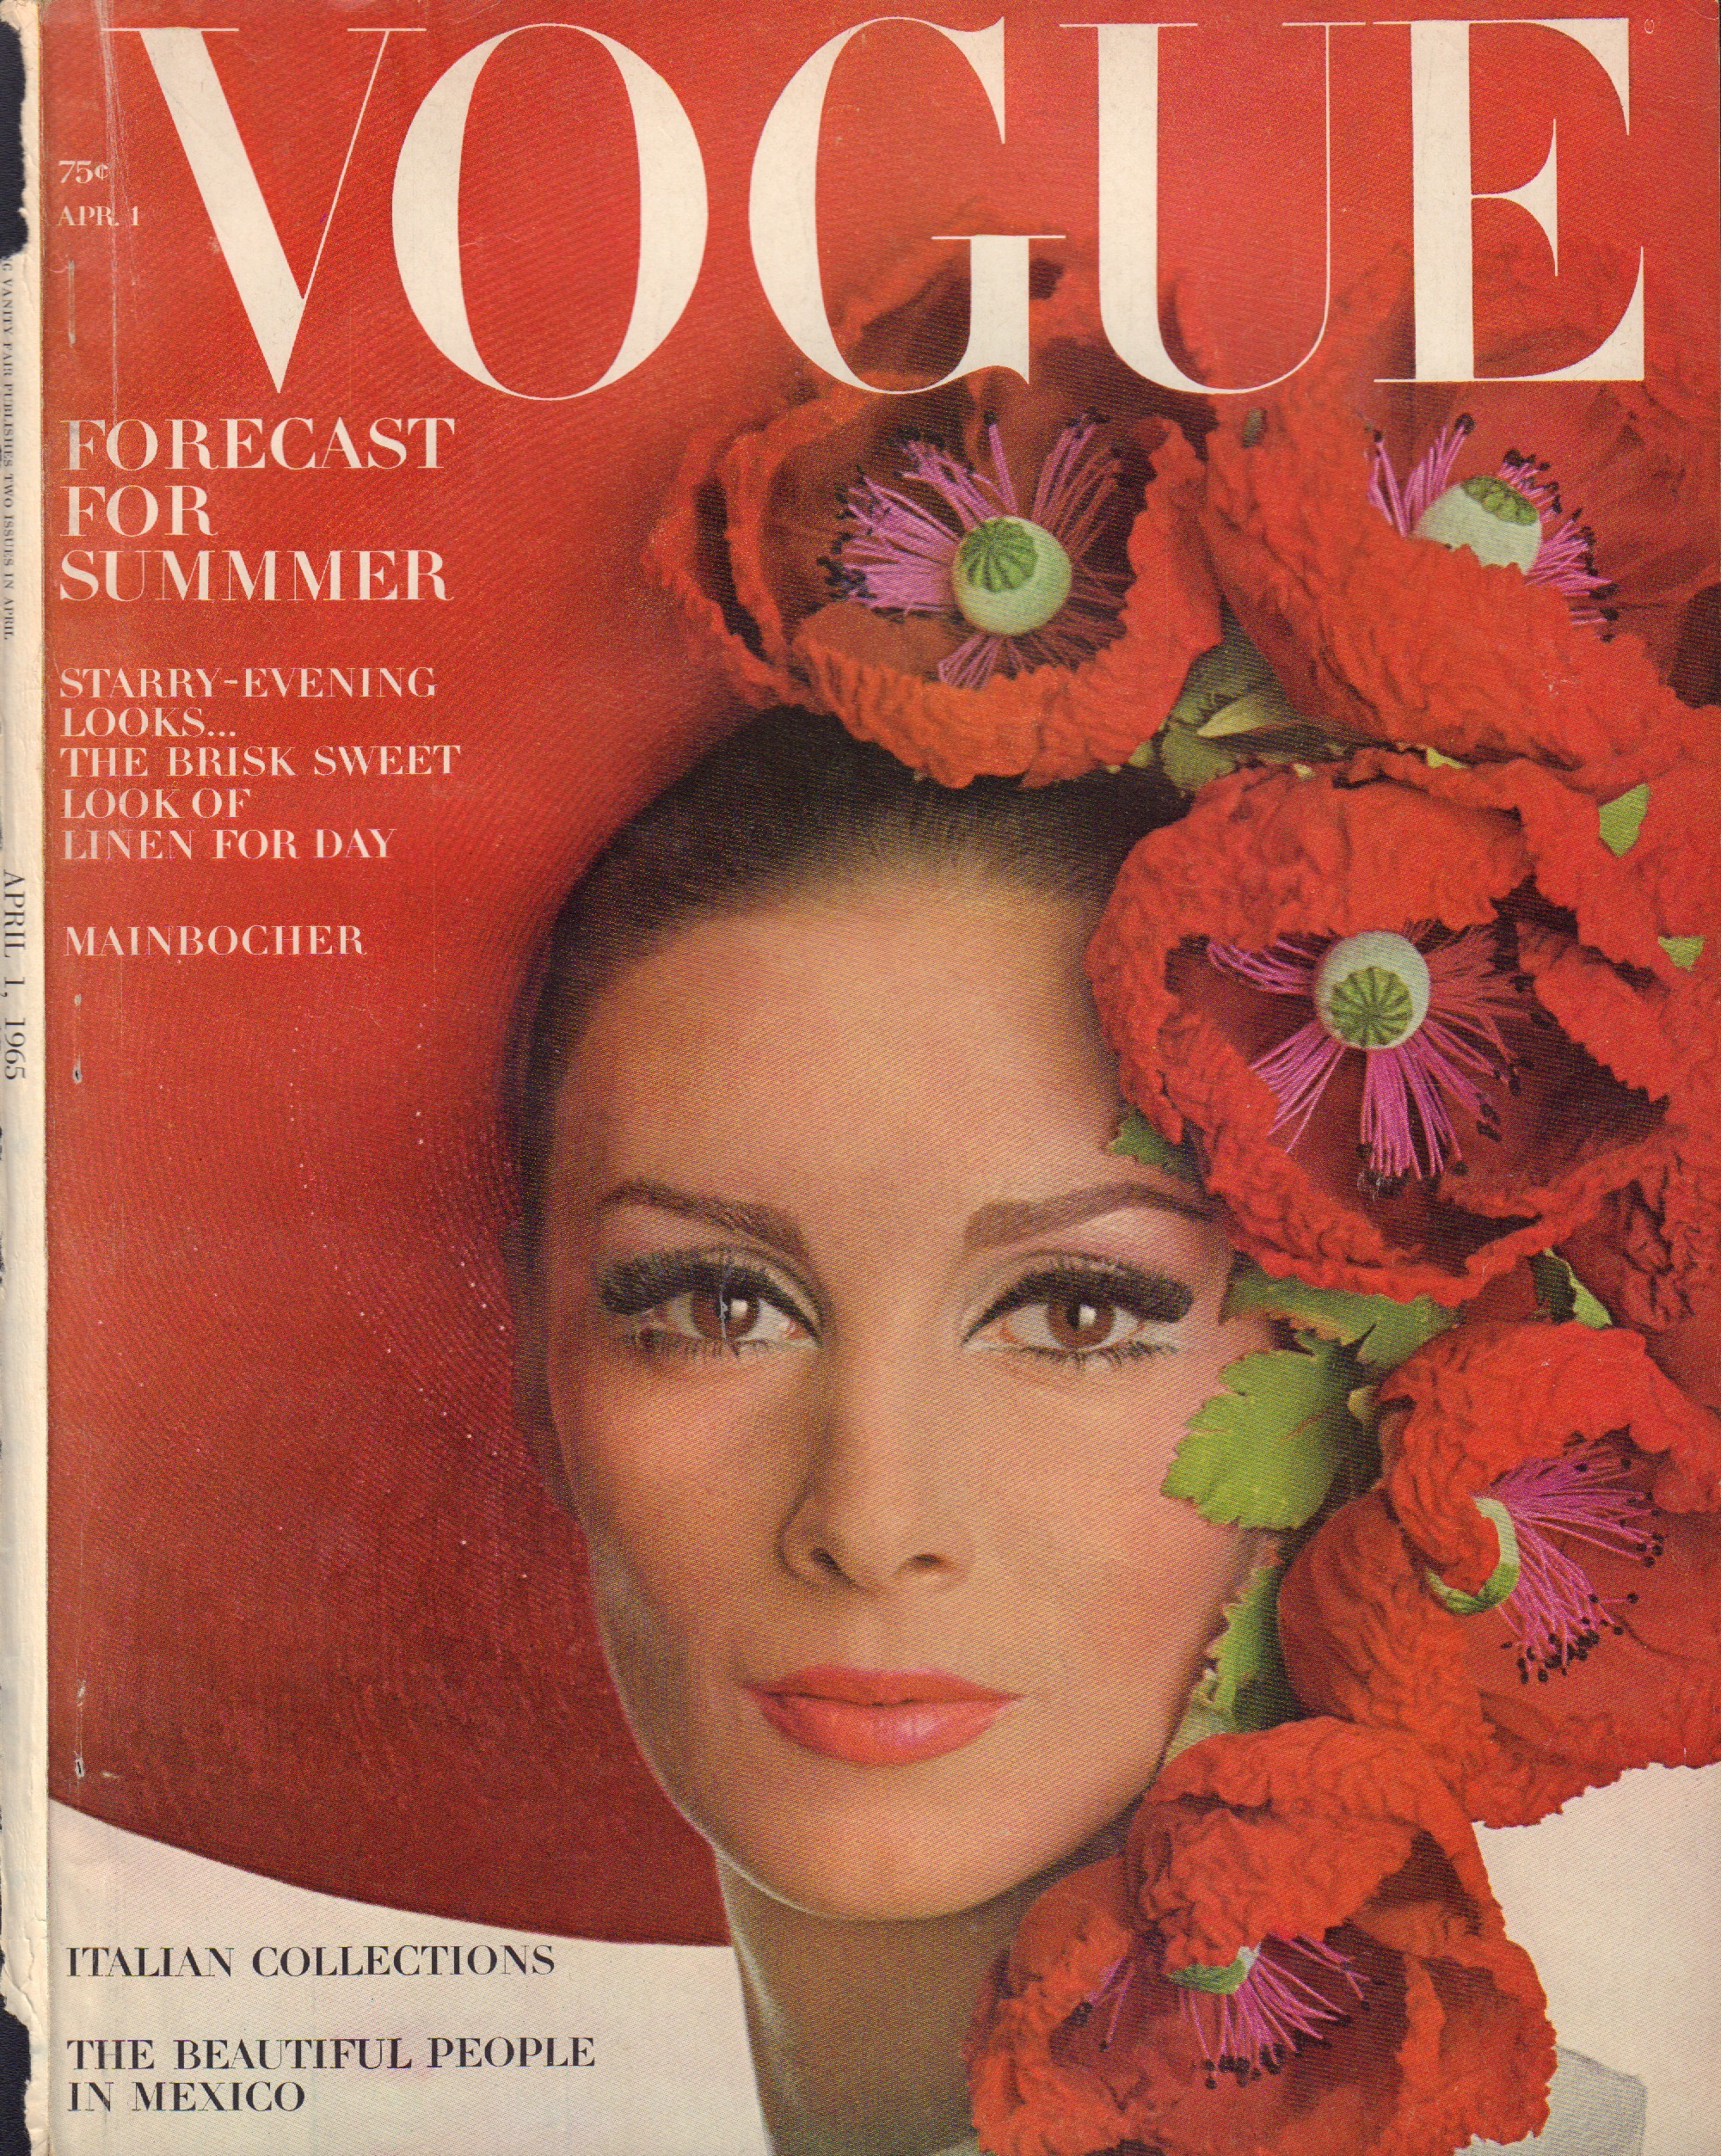 Image for  Vogue April 1, 1965 - Cover Only